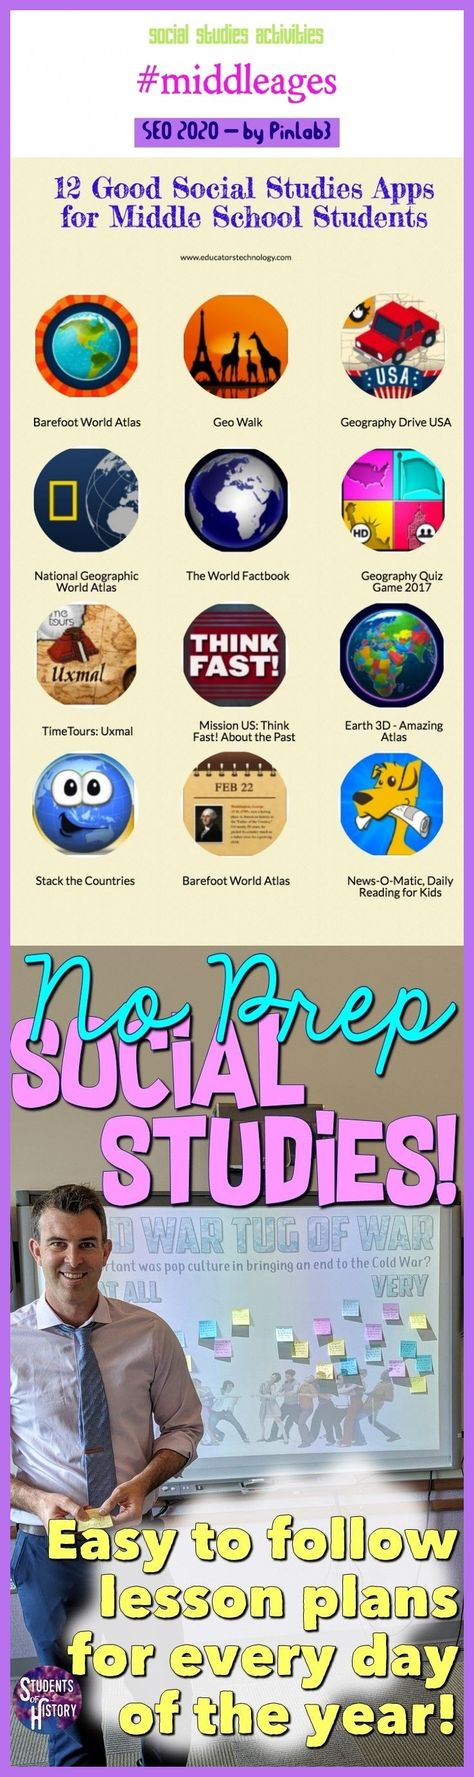 150 Jilly Stanier Ideas Infographic Marketing Marketing Poster Architectural Section